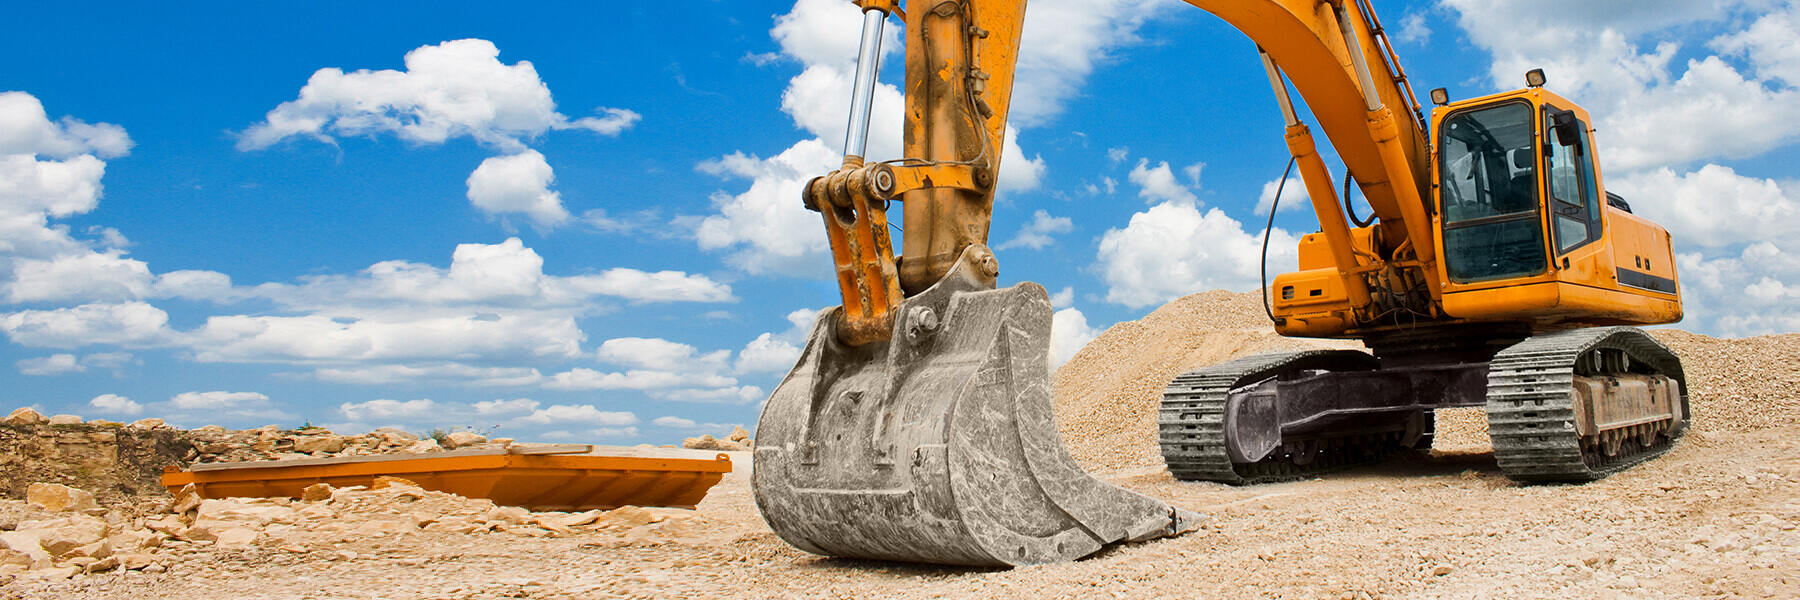 A yellow excavator sits on a dirt lot in front of partly cloudy  blue skies.